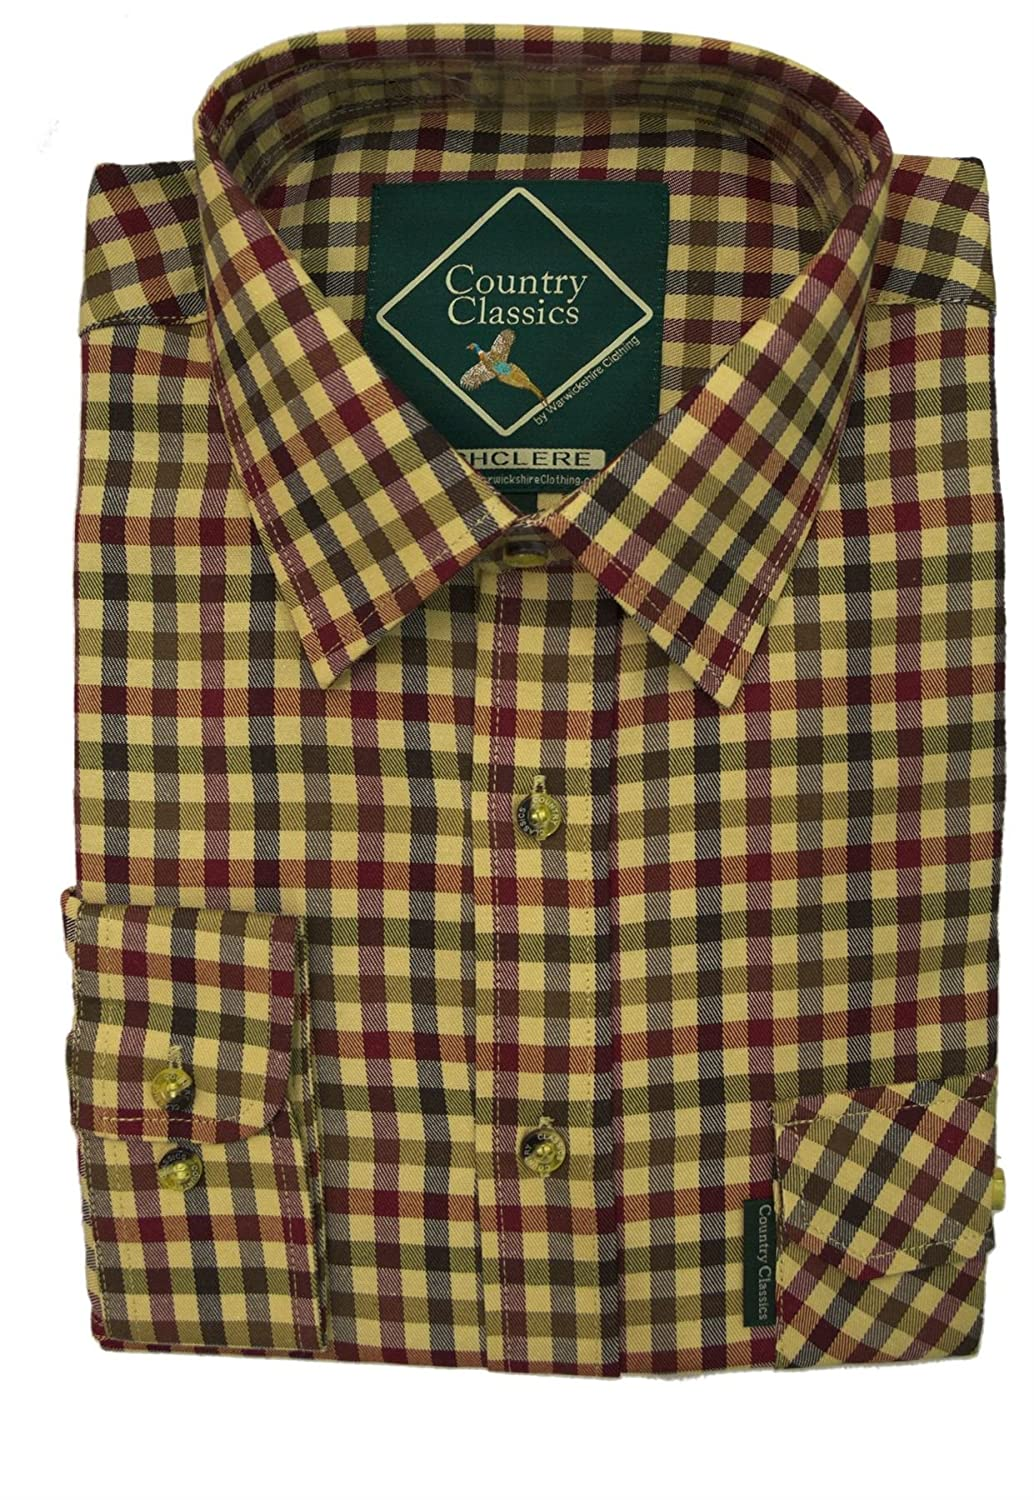 Country Classics Mens Shirts Ascot Stylish Check Flannel Outdoor Long Sleeve Shirts